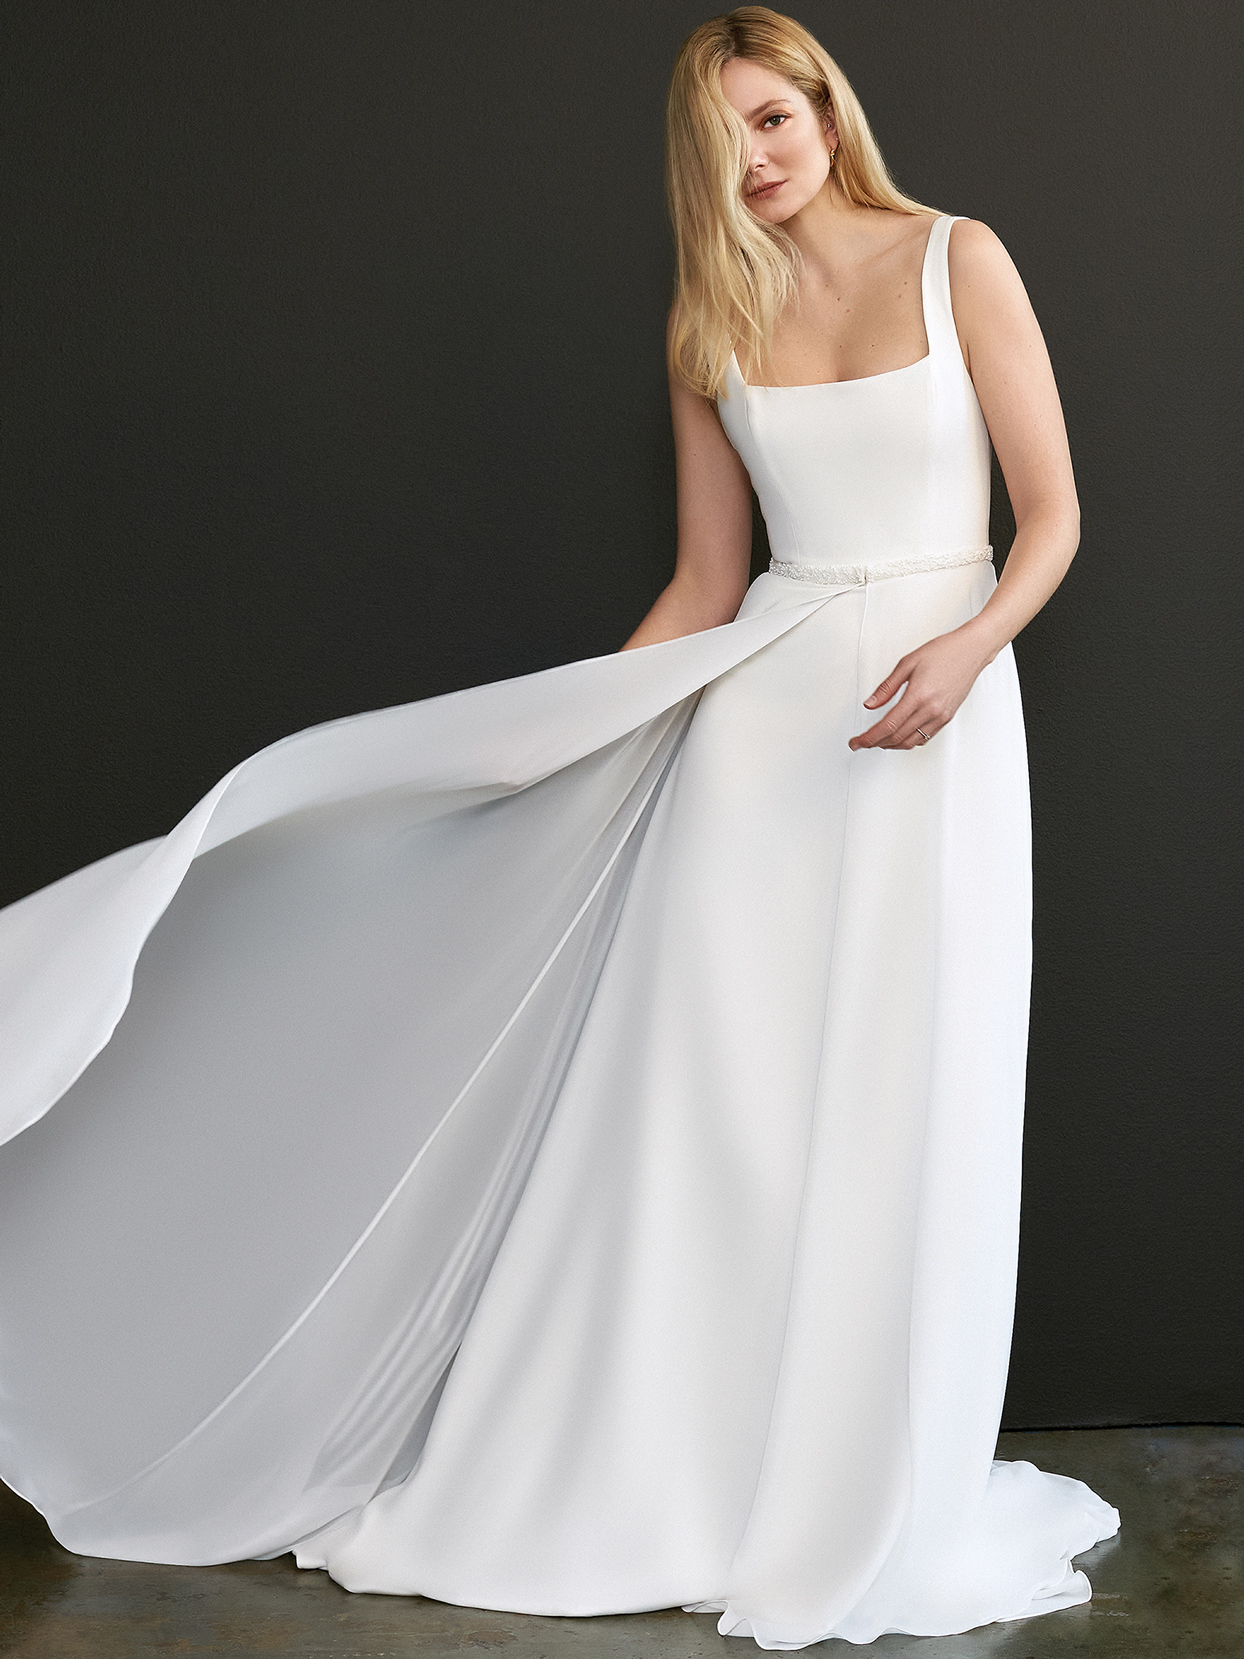 savannah miller square neck a-line wedding dress spring 2021